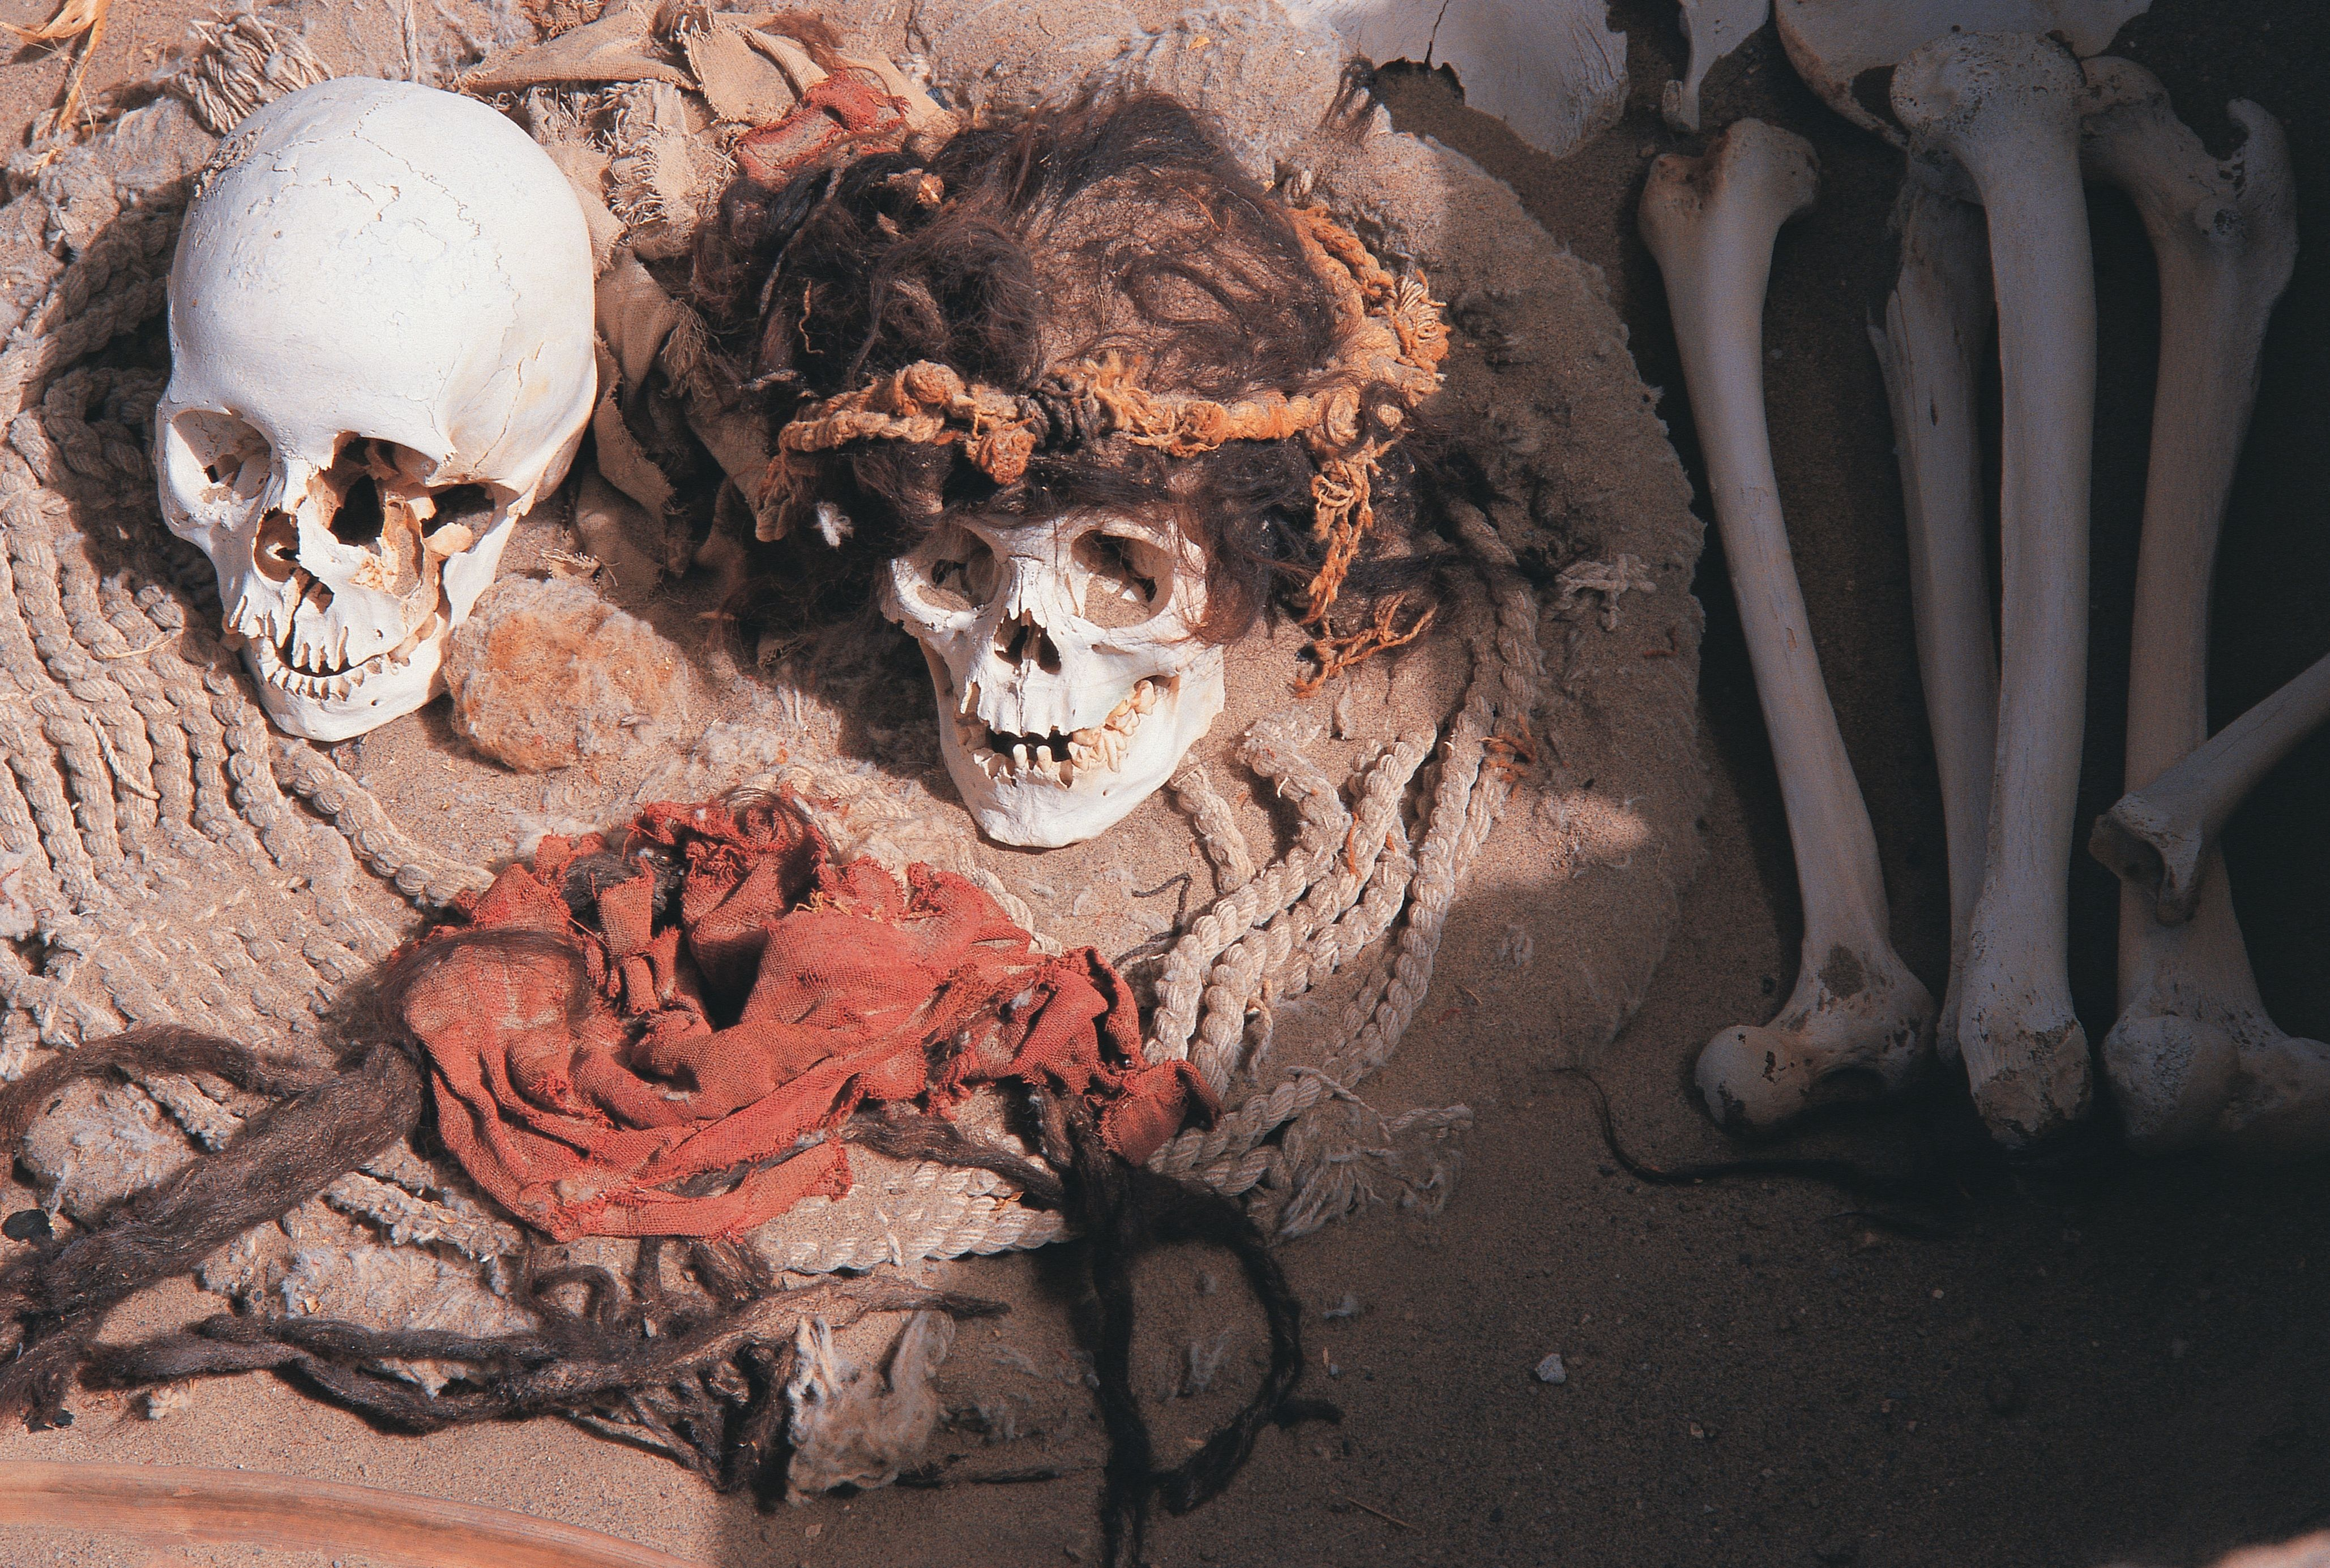 Archaeological site with bones and artifacts